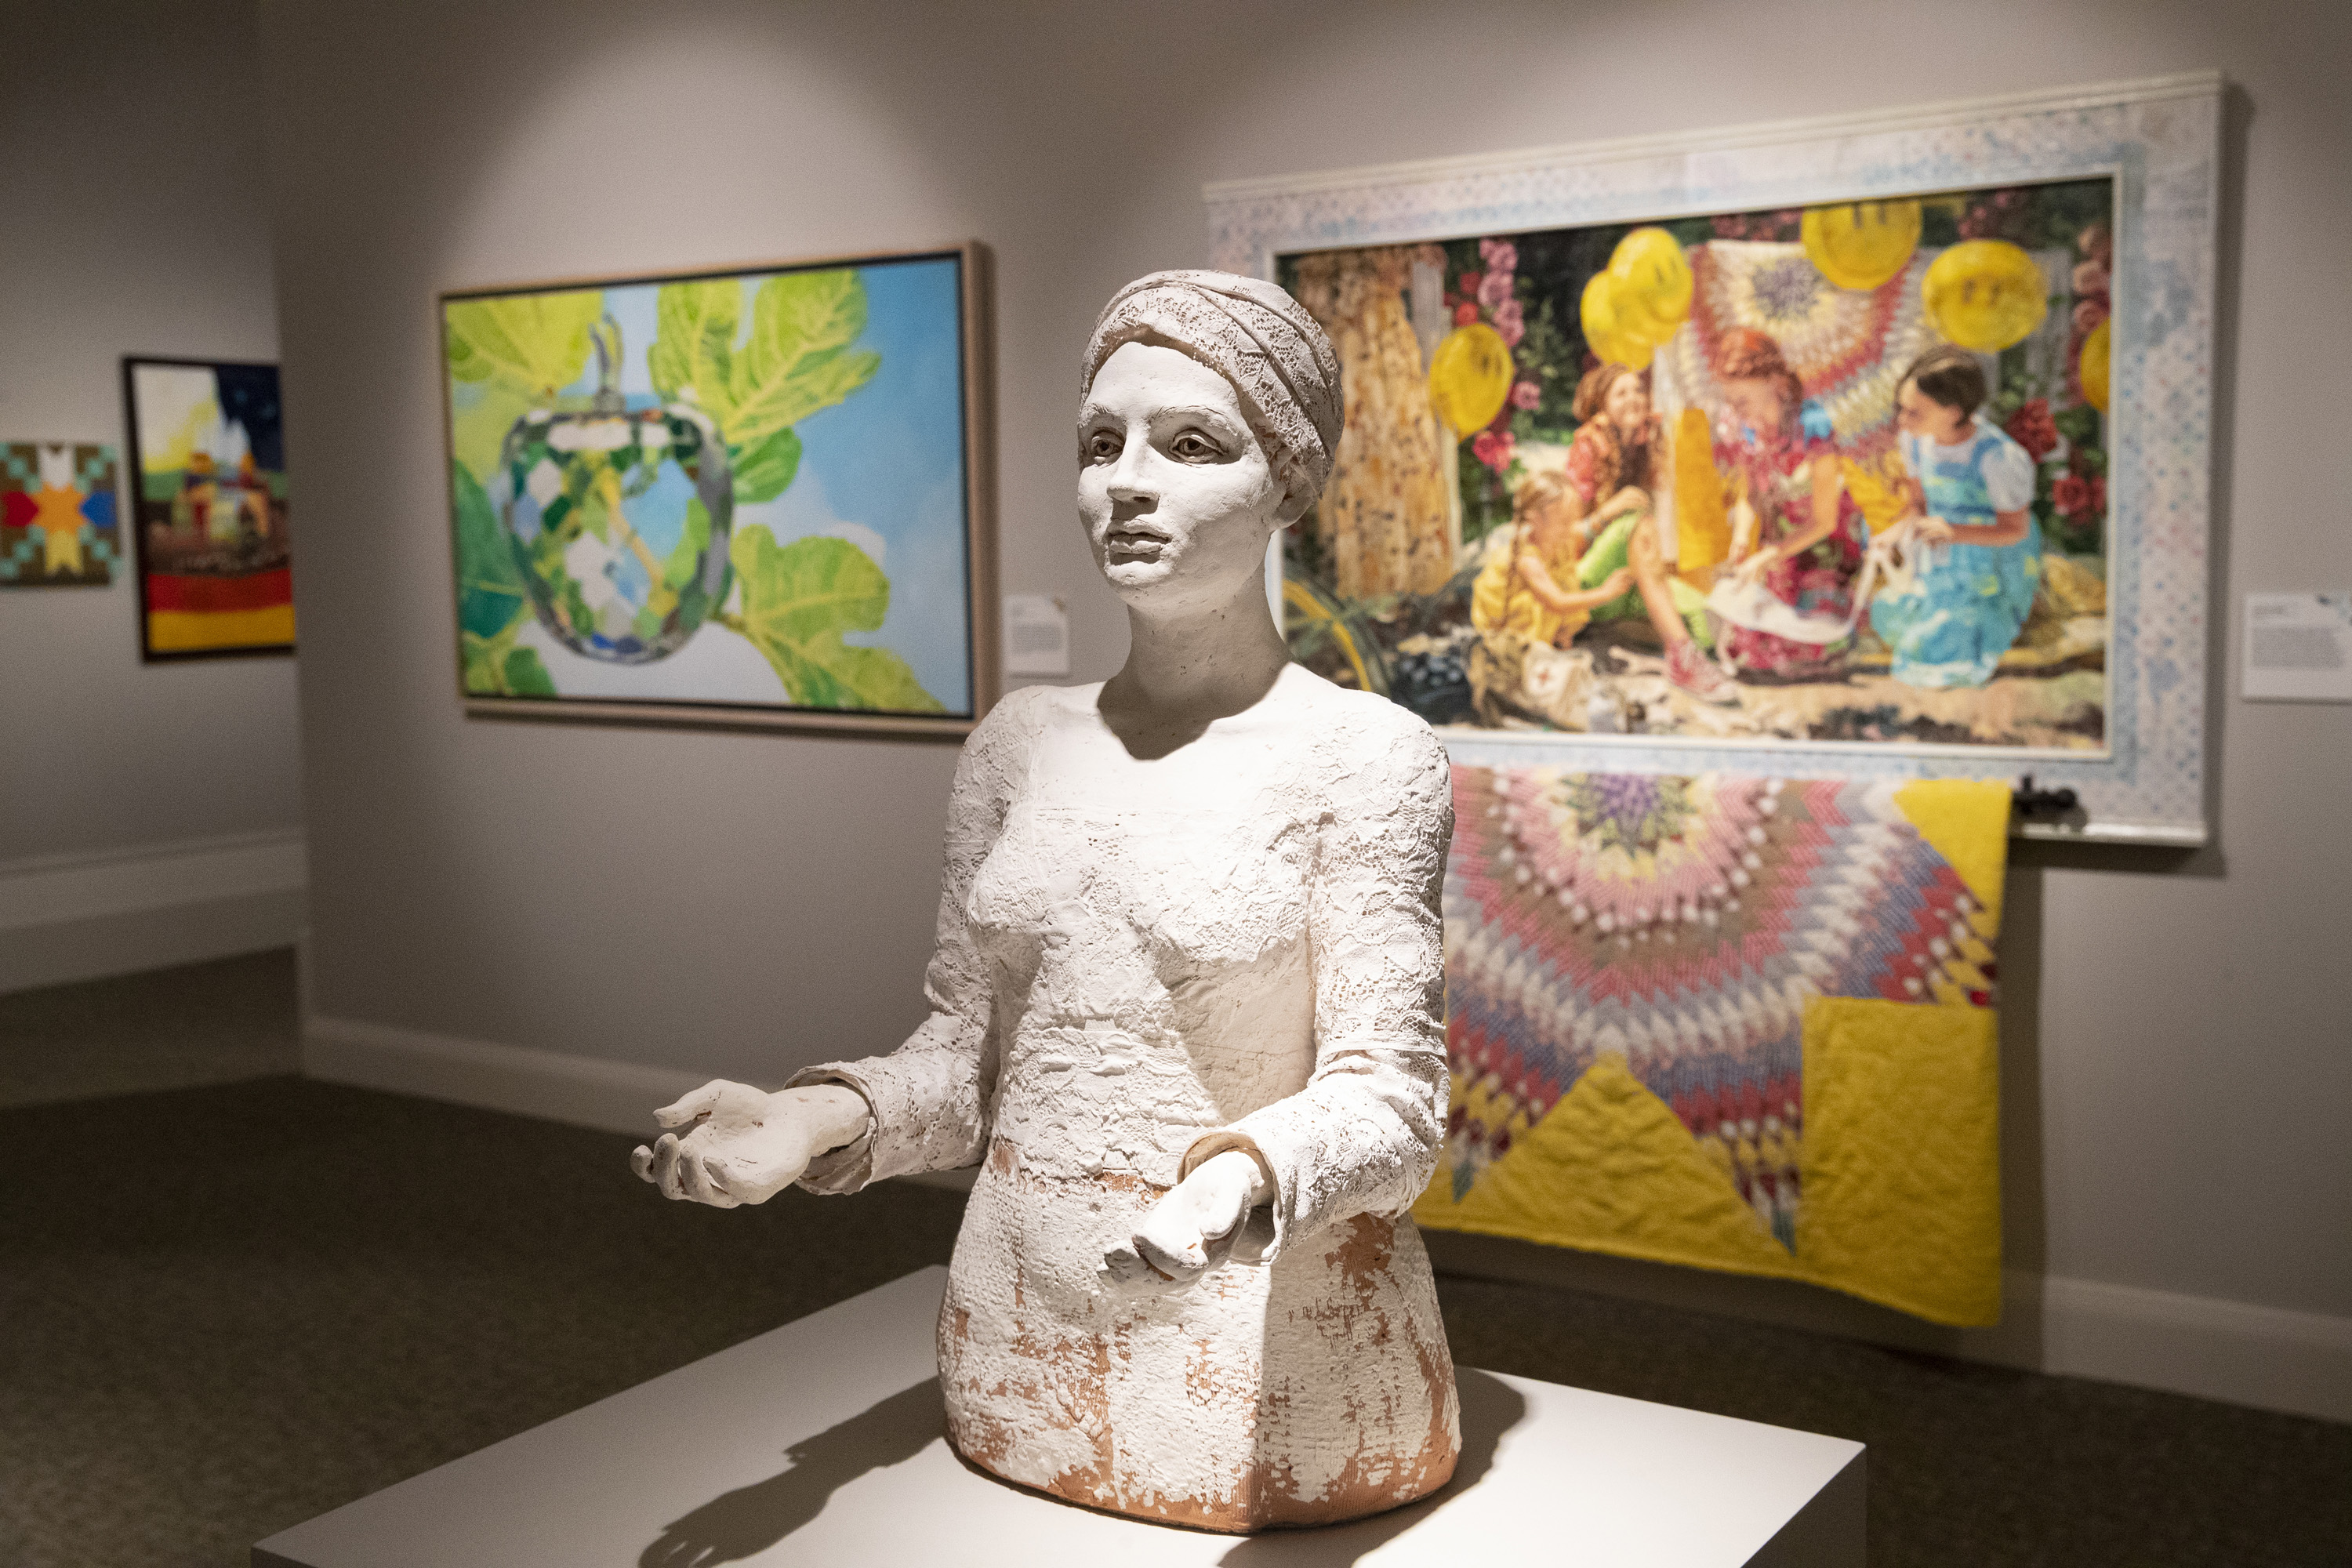 The diverse artwork found in the 11th International Art Competition was crafted by Latter-day Saints from more than two dozens countries.